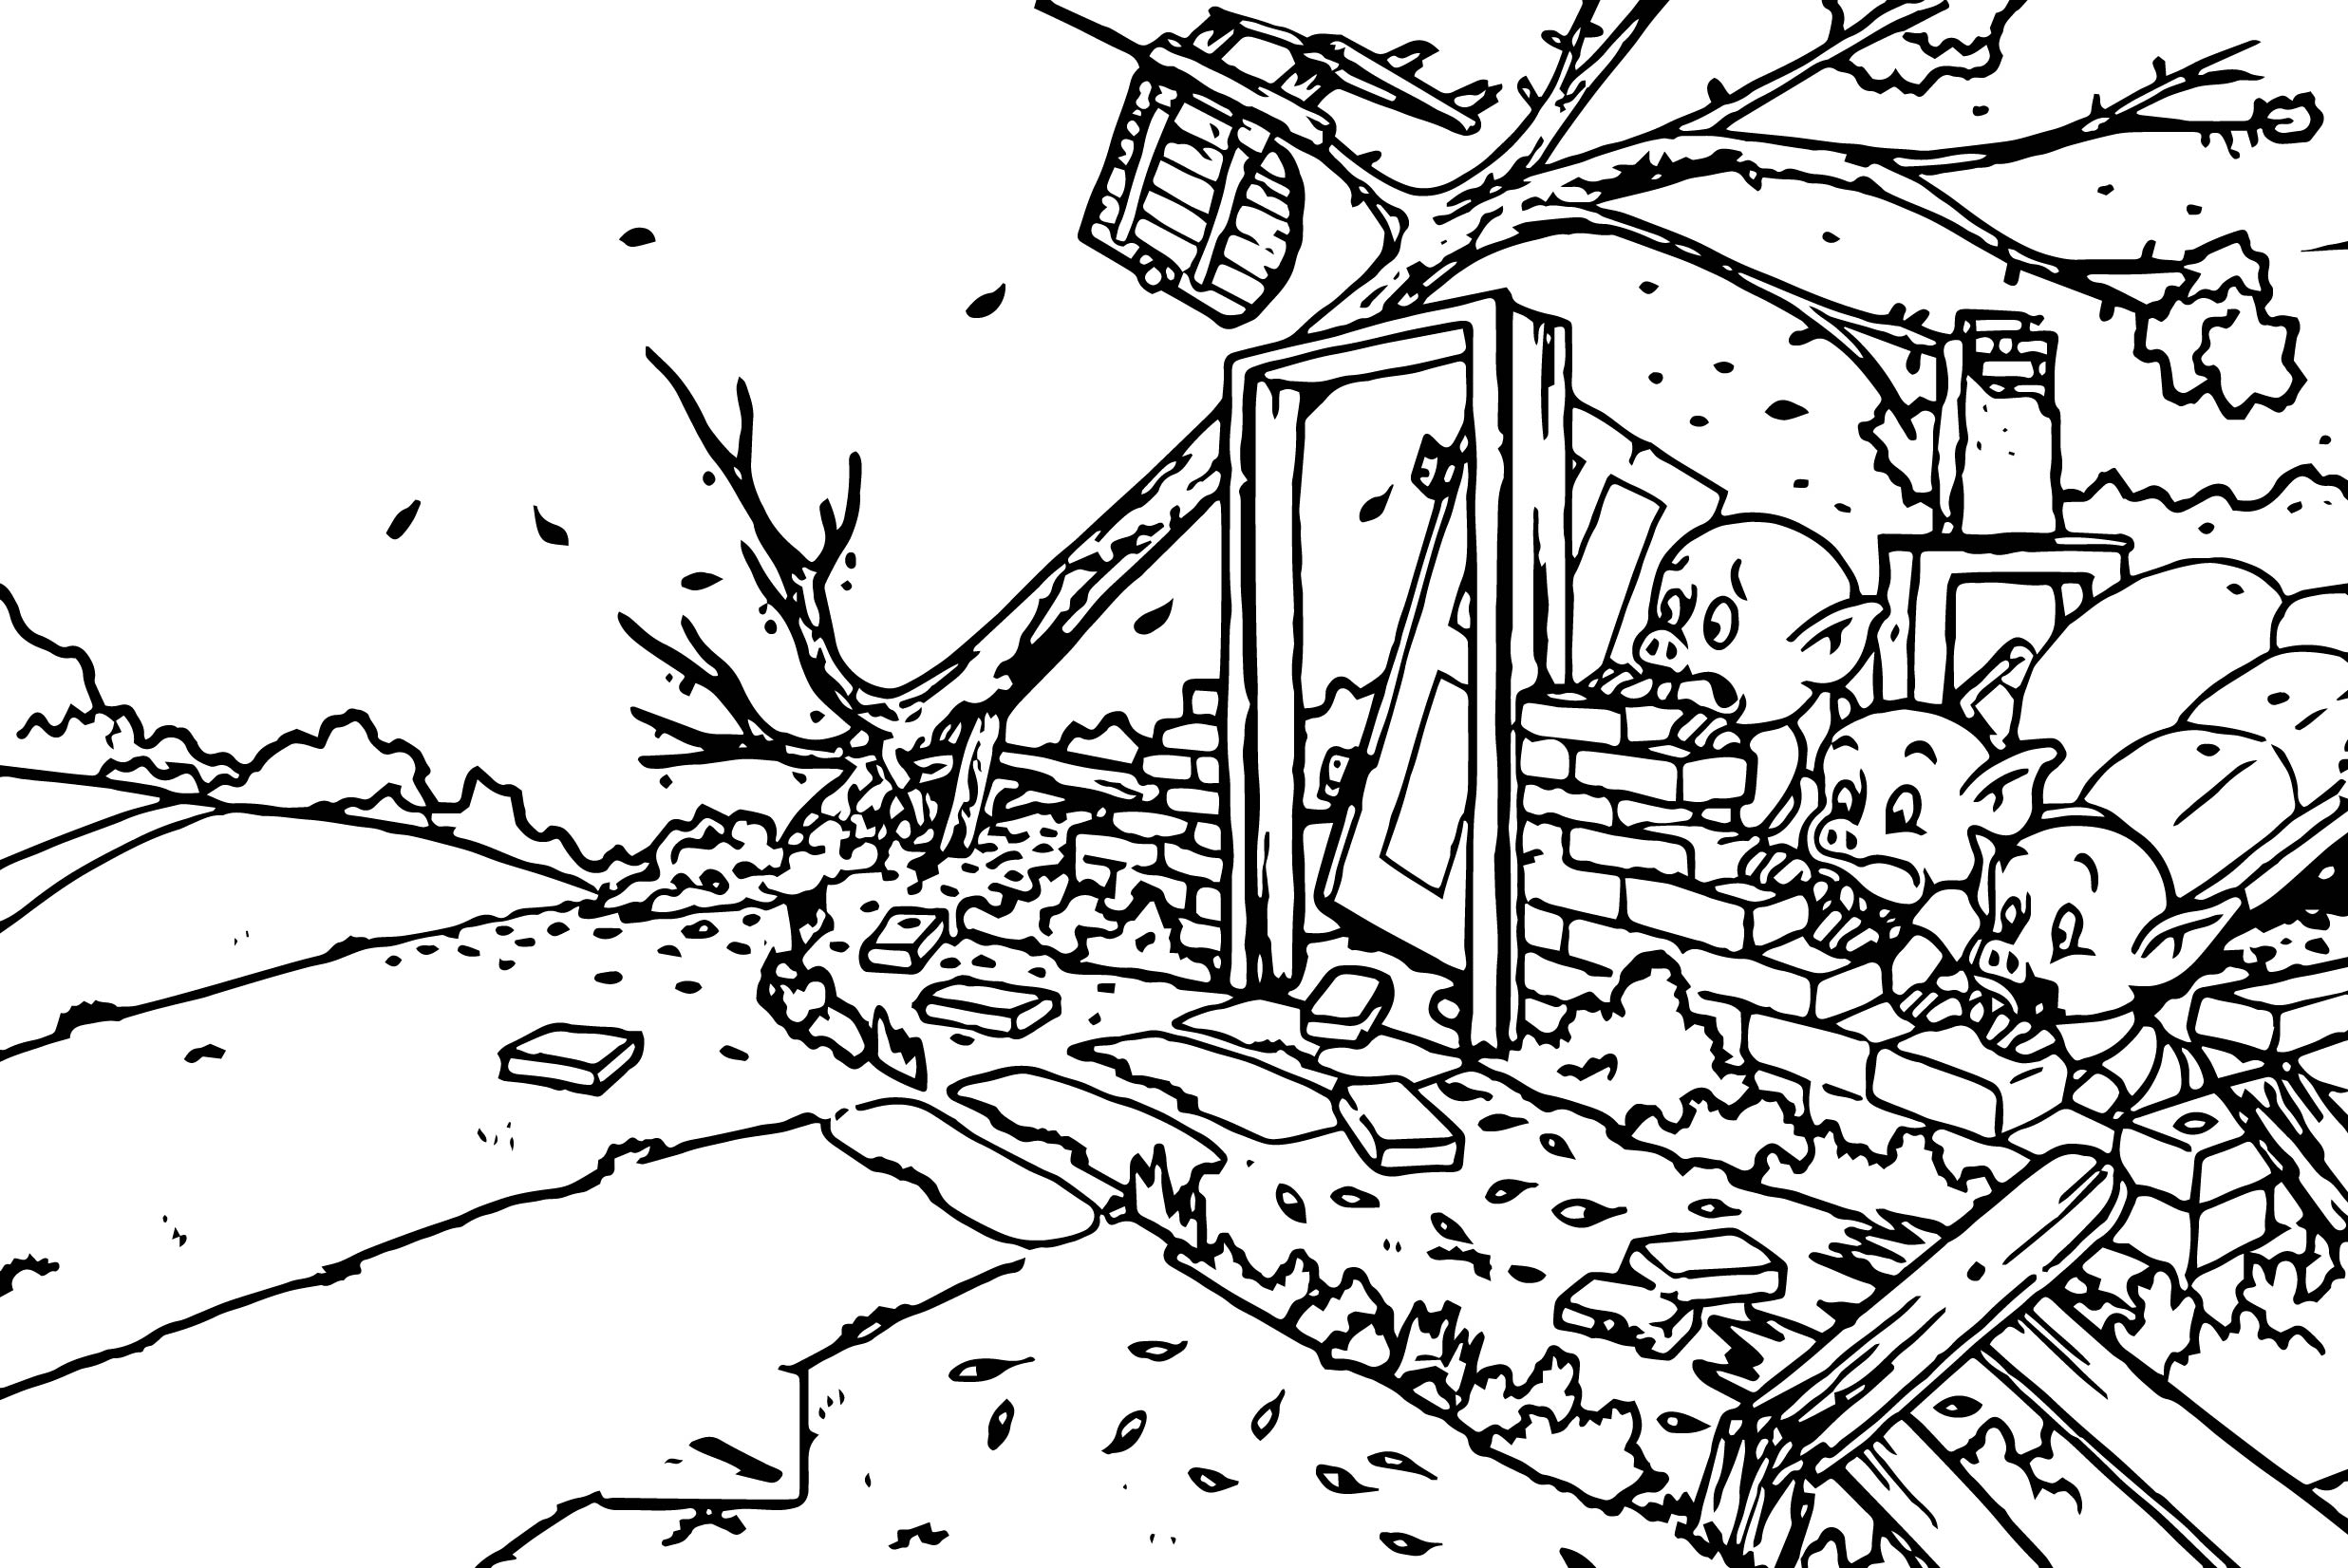 Stihl Chainsaws Three Little Pigs Small Coloring Page